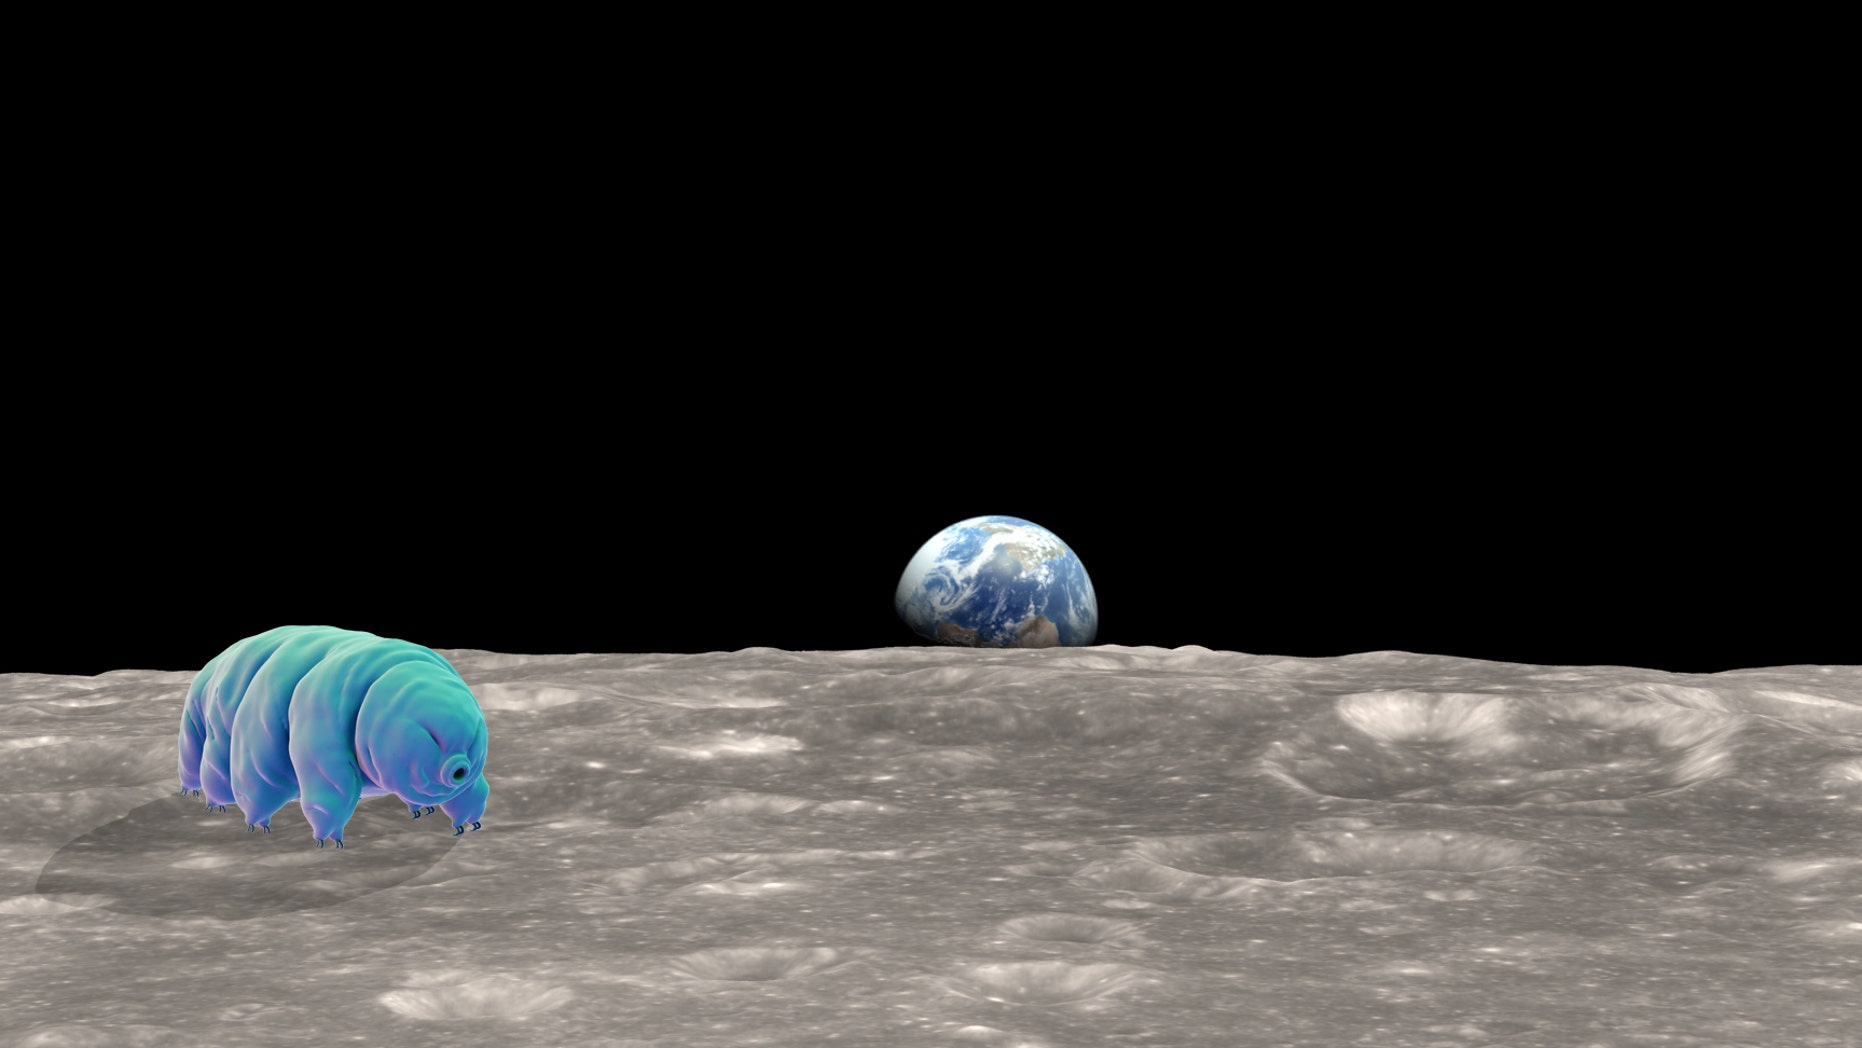 If any creature could survive a crash-landing on the moon, it would probably be a tardigrade.